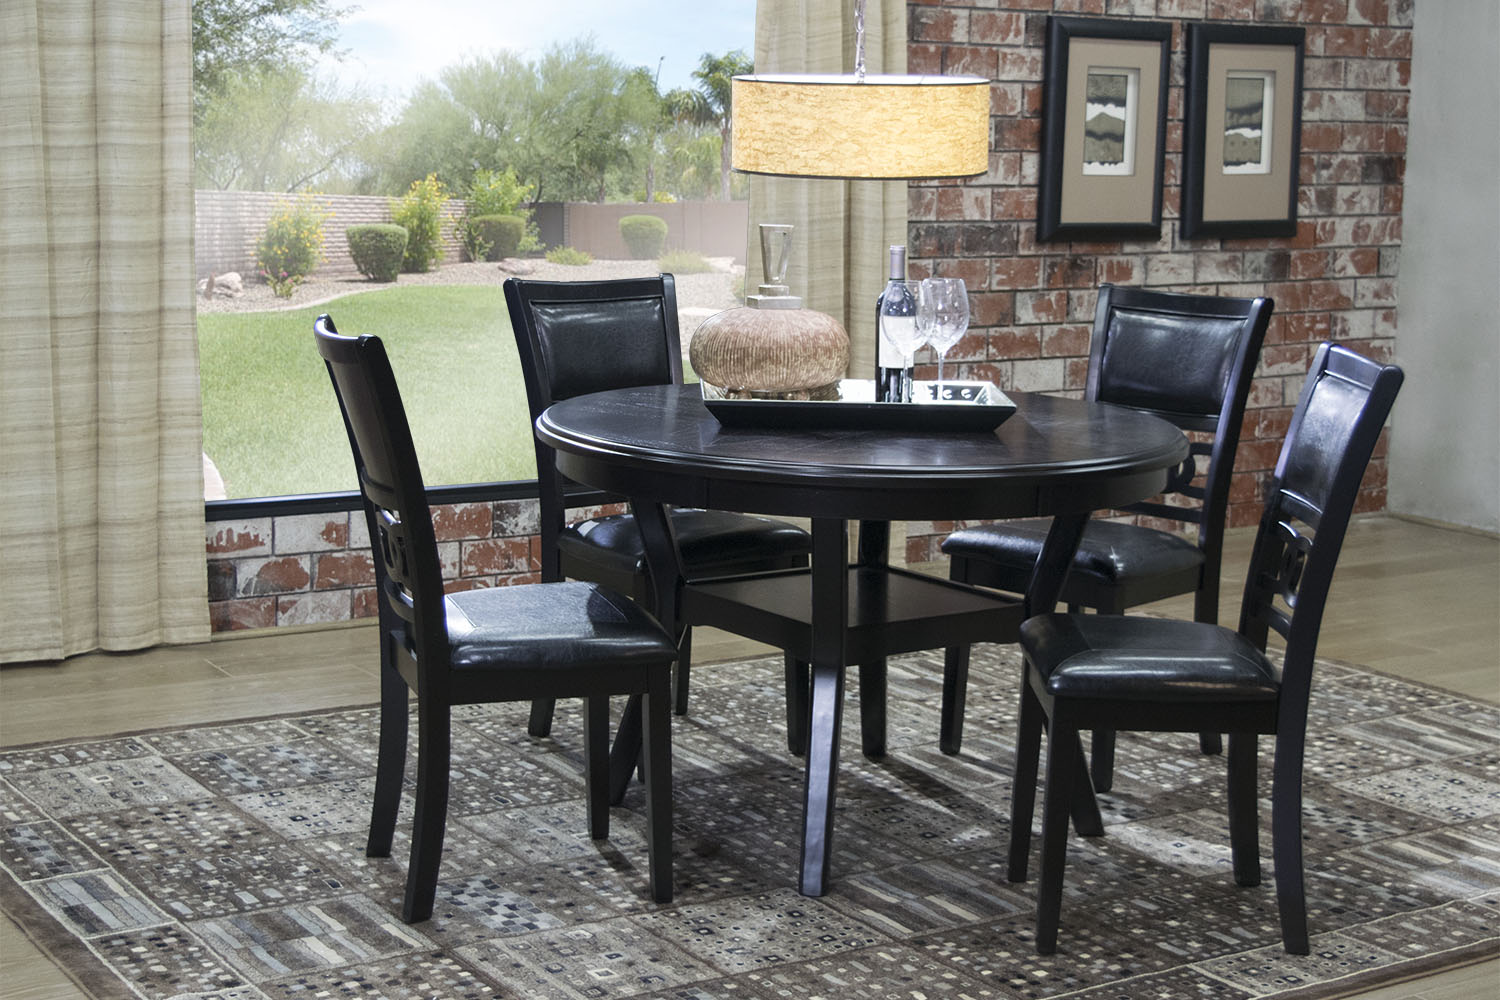 Most Popular Dining Room Tables. 513004772   Gia Round Table With 4 Chairs  In Dark Brown